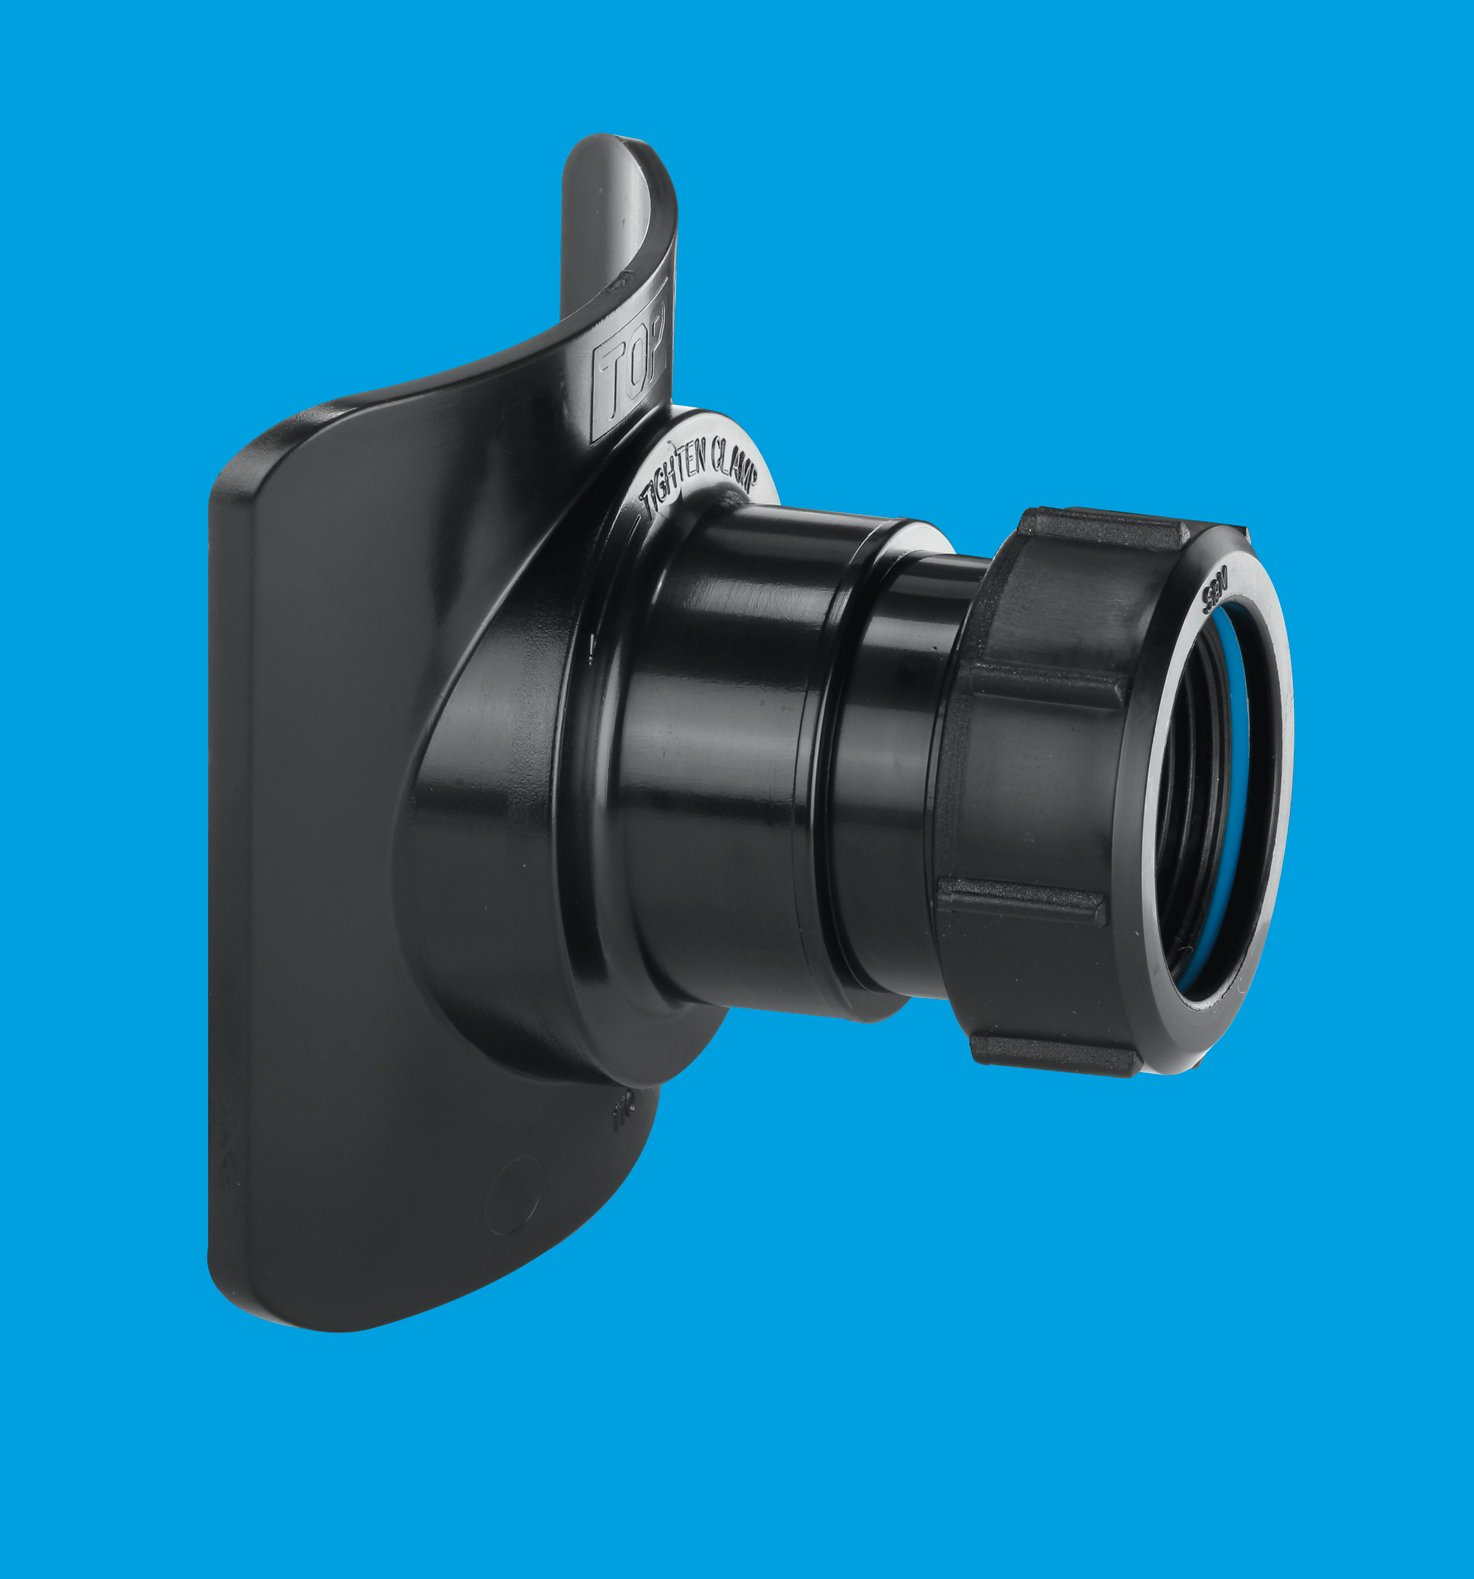 Black Mechanical Soil Pipe Boss Connector Mcalpine